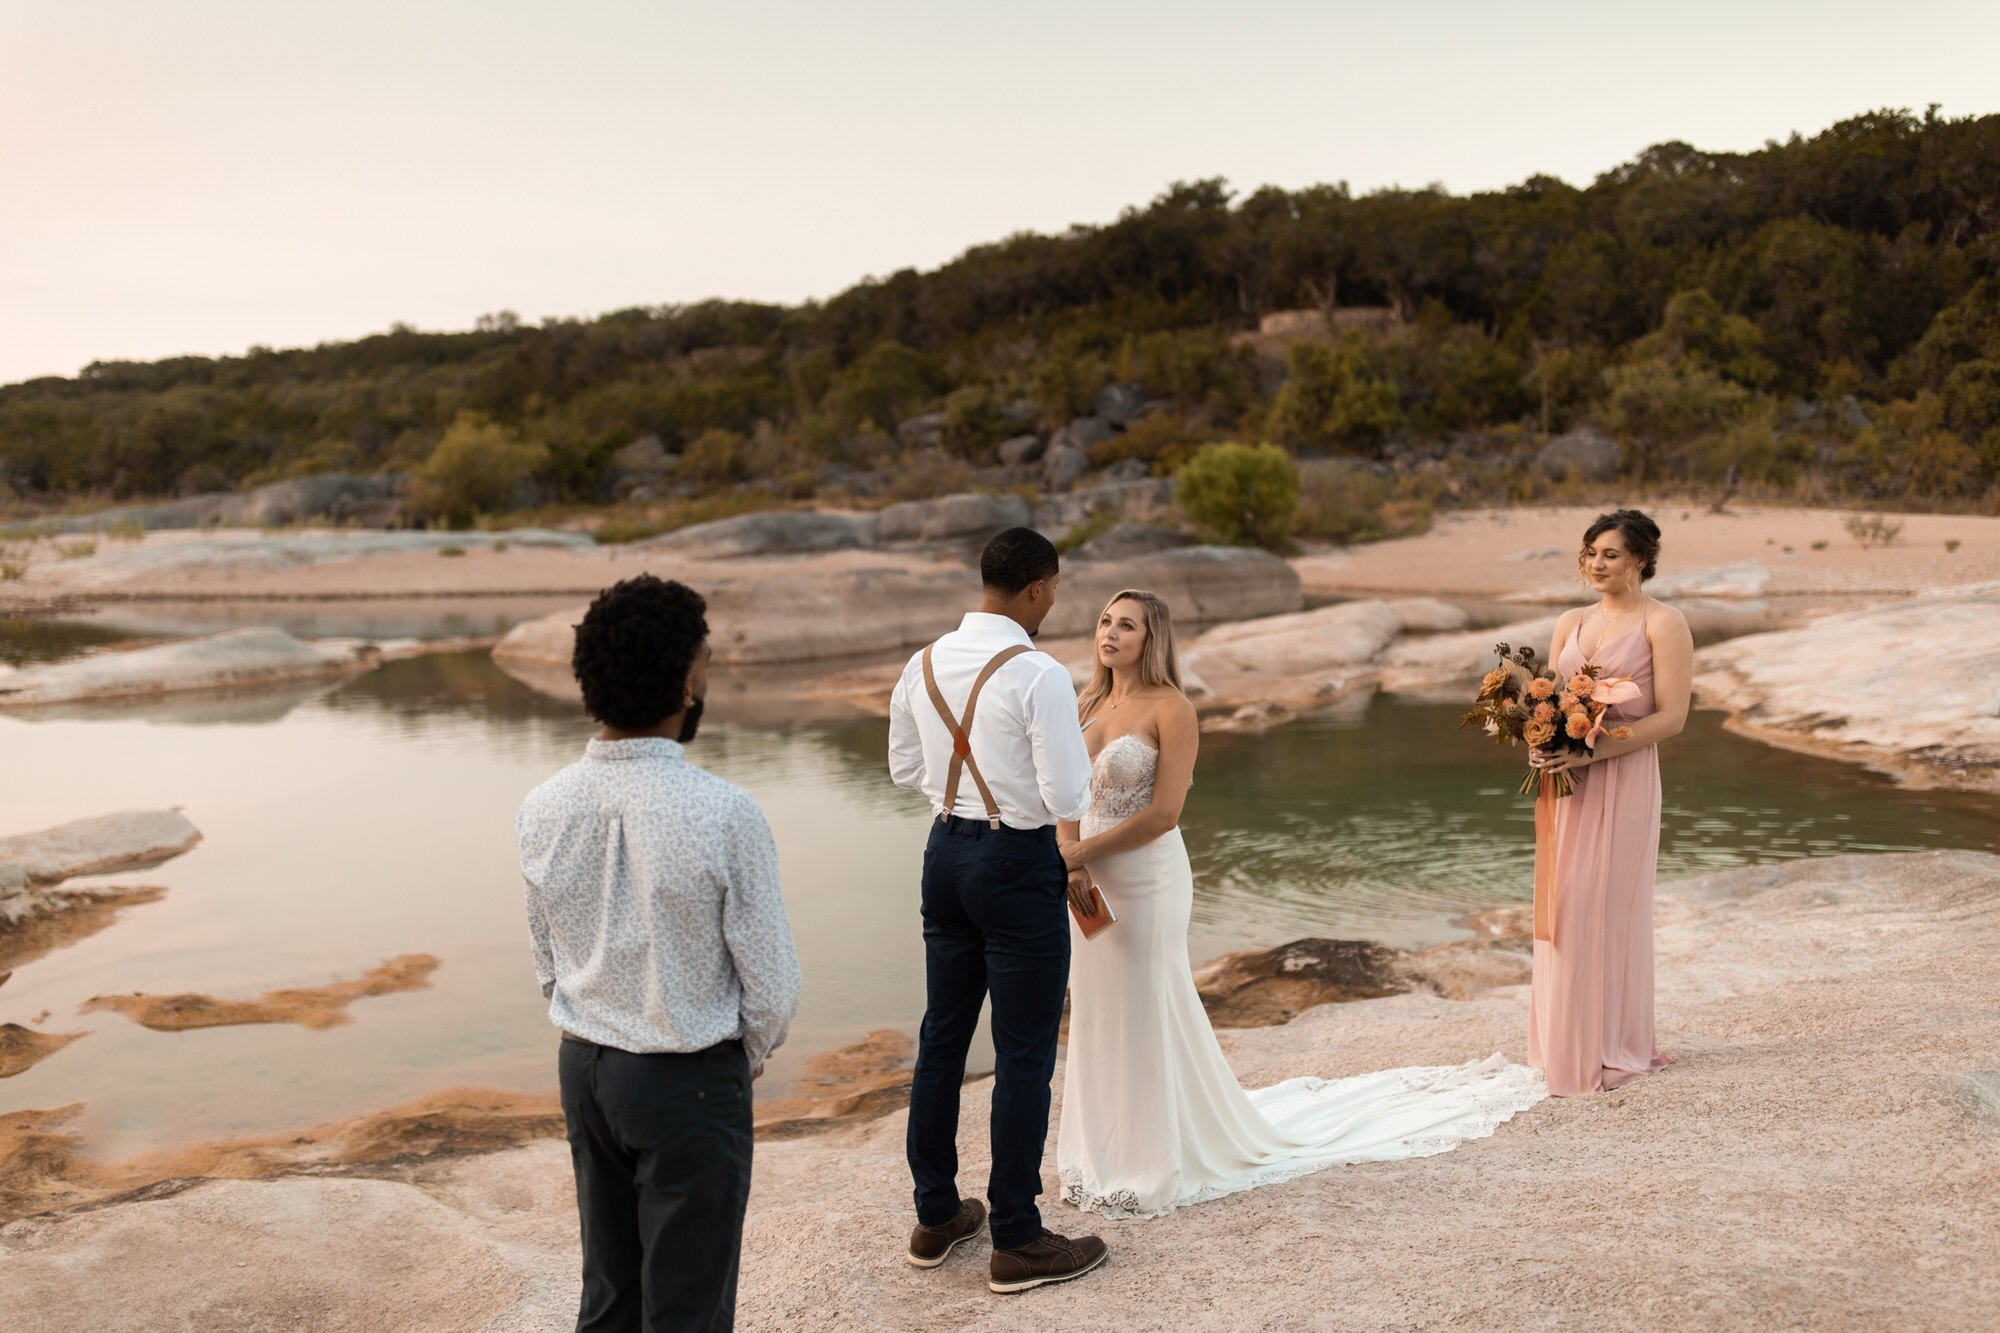 elopement ceremony in Texas at Pedernales Falls State Park